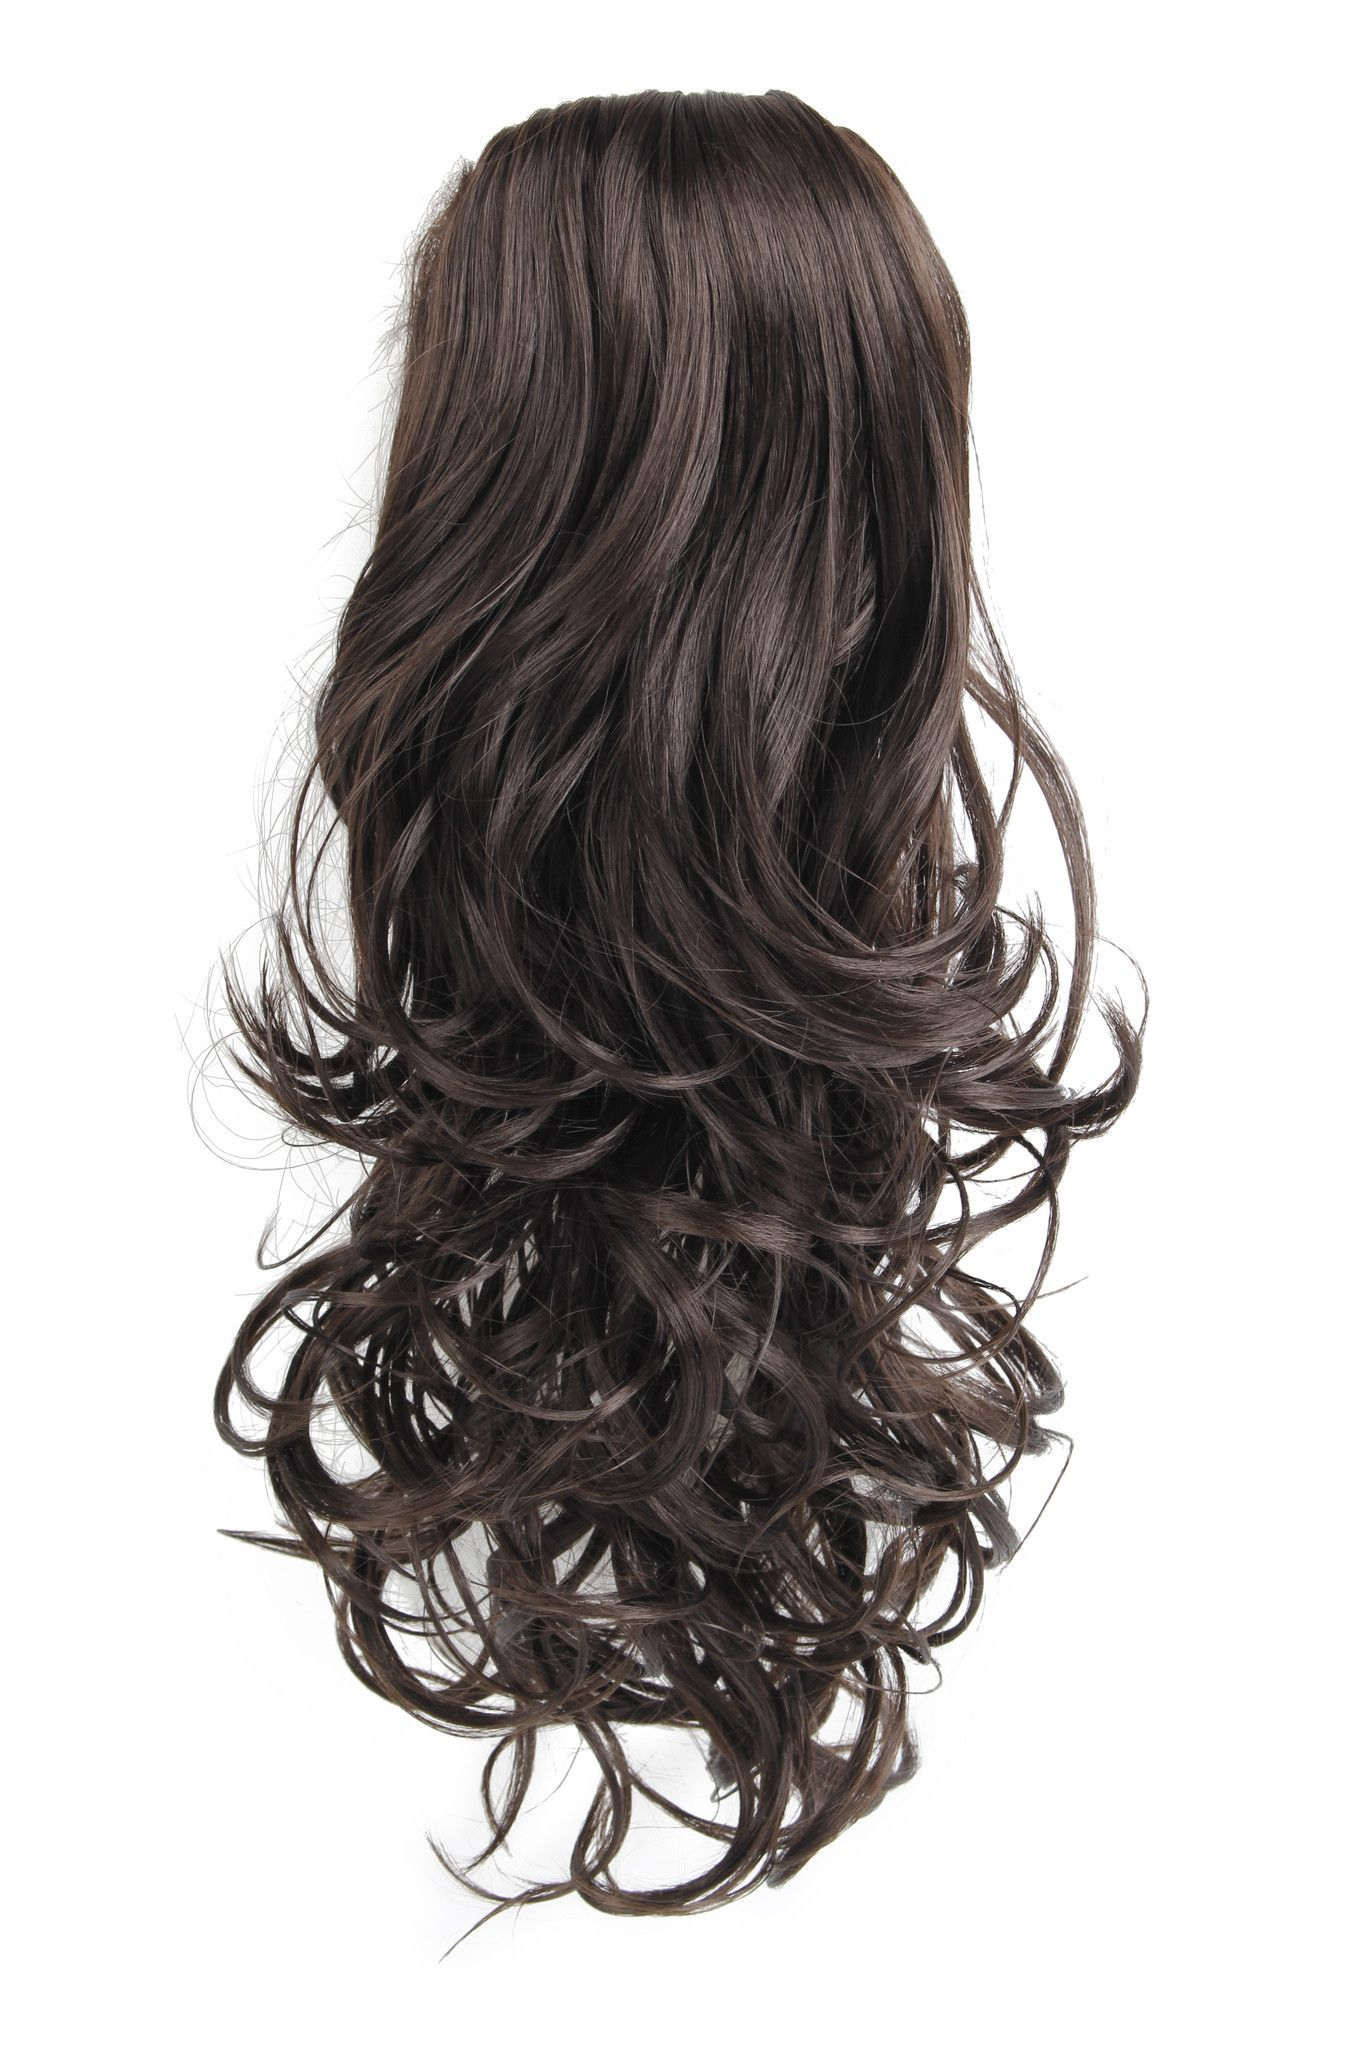 16 Inch Curly Ponytail Hair Extensions With Comb And Drawstring Hair